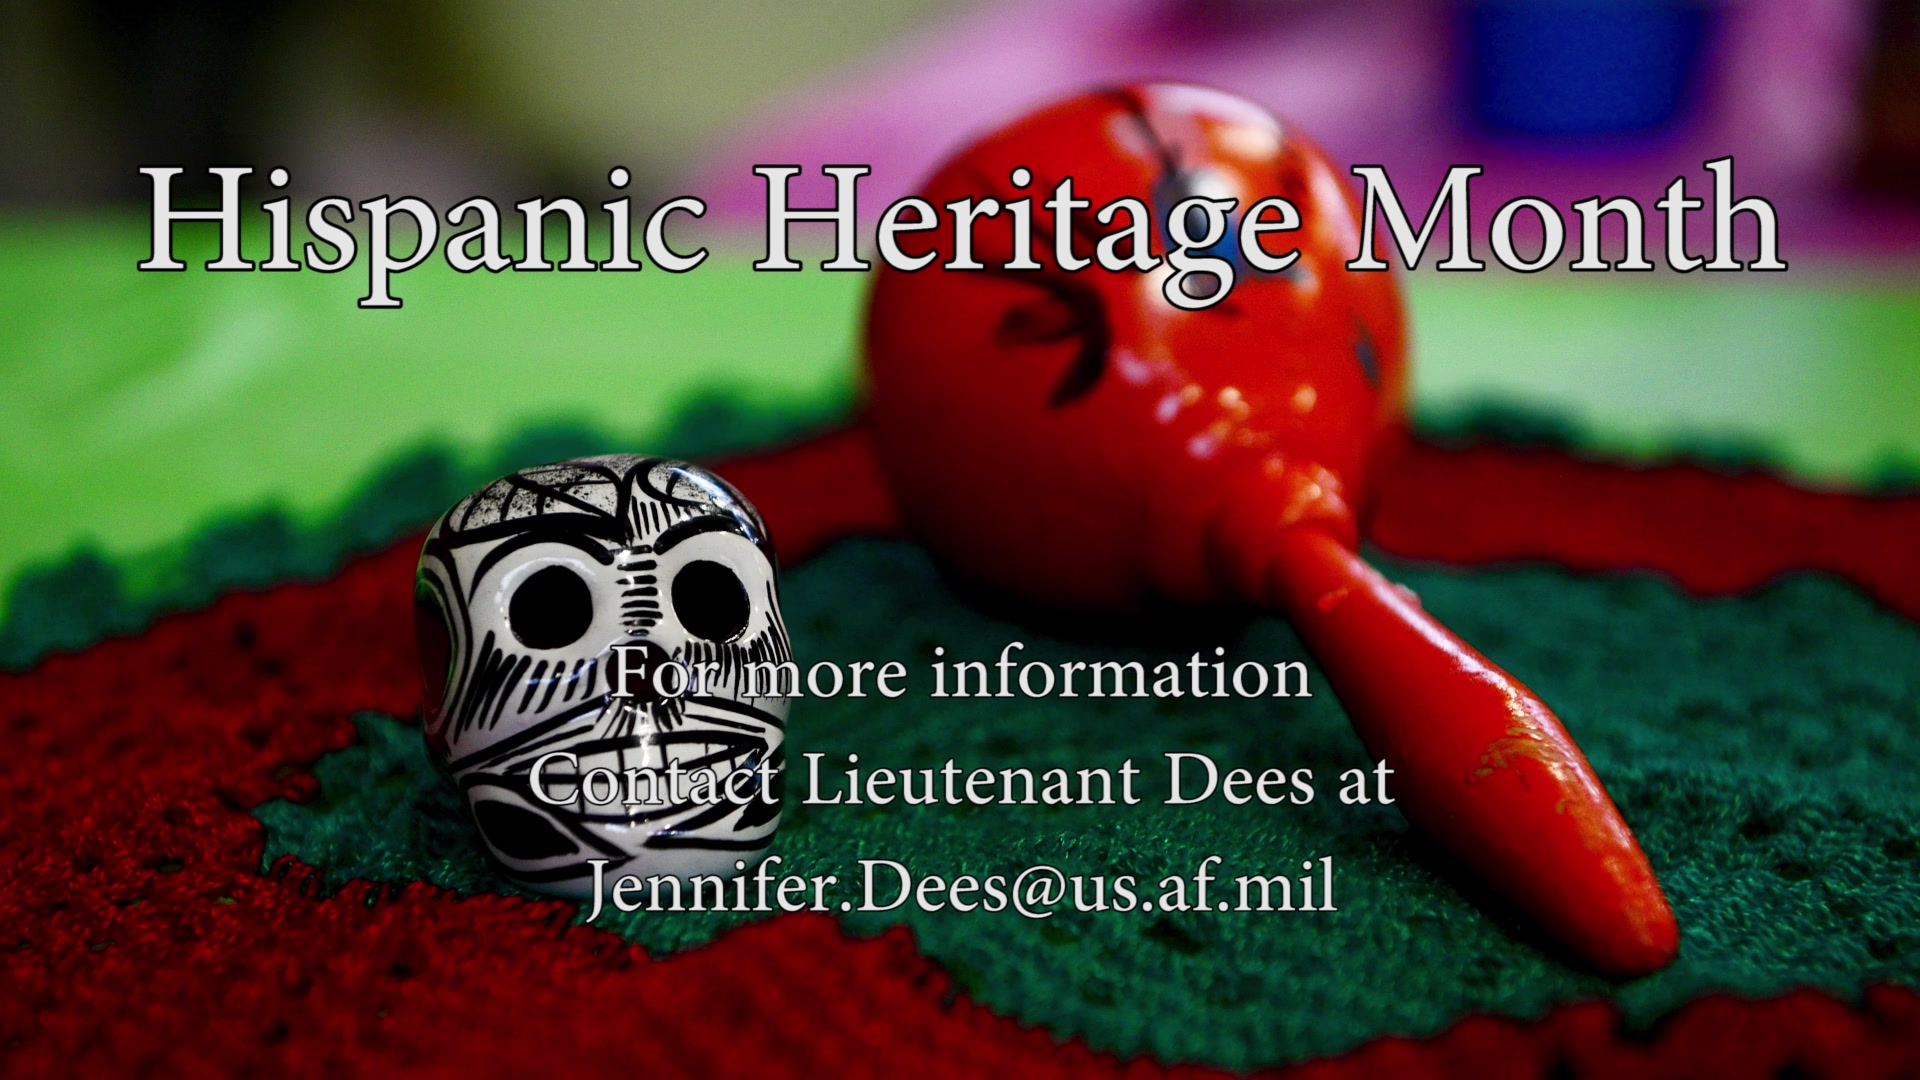 Hispanic Heritage Month is celebrated from September 15th to October 15th. Here is all the events being held around Goodfellow Air Force Base in celebration.